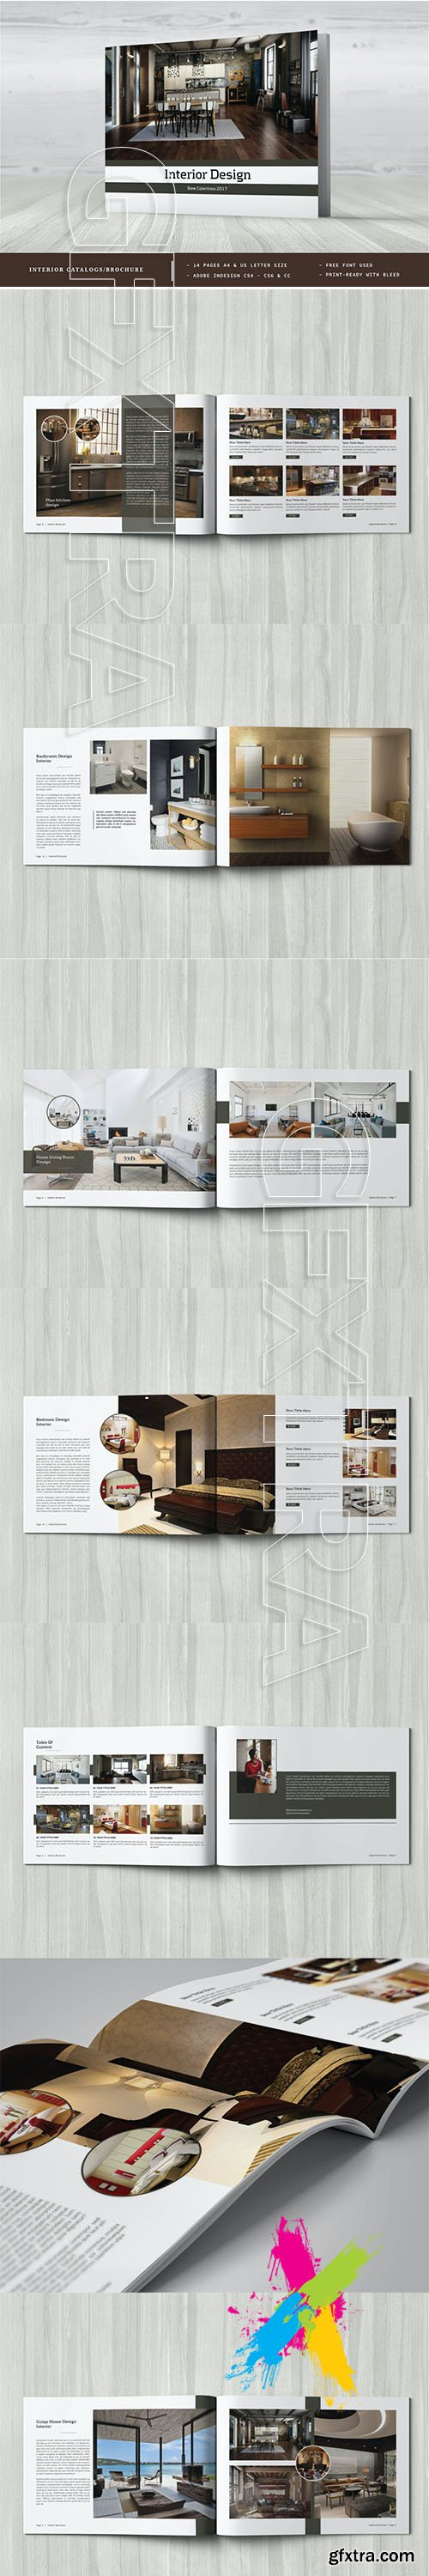 Interior Catalogue / Brochure